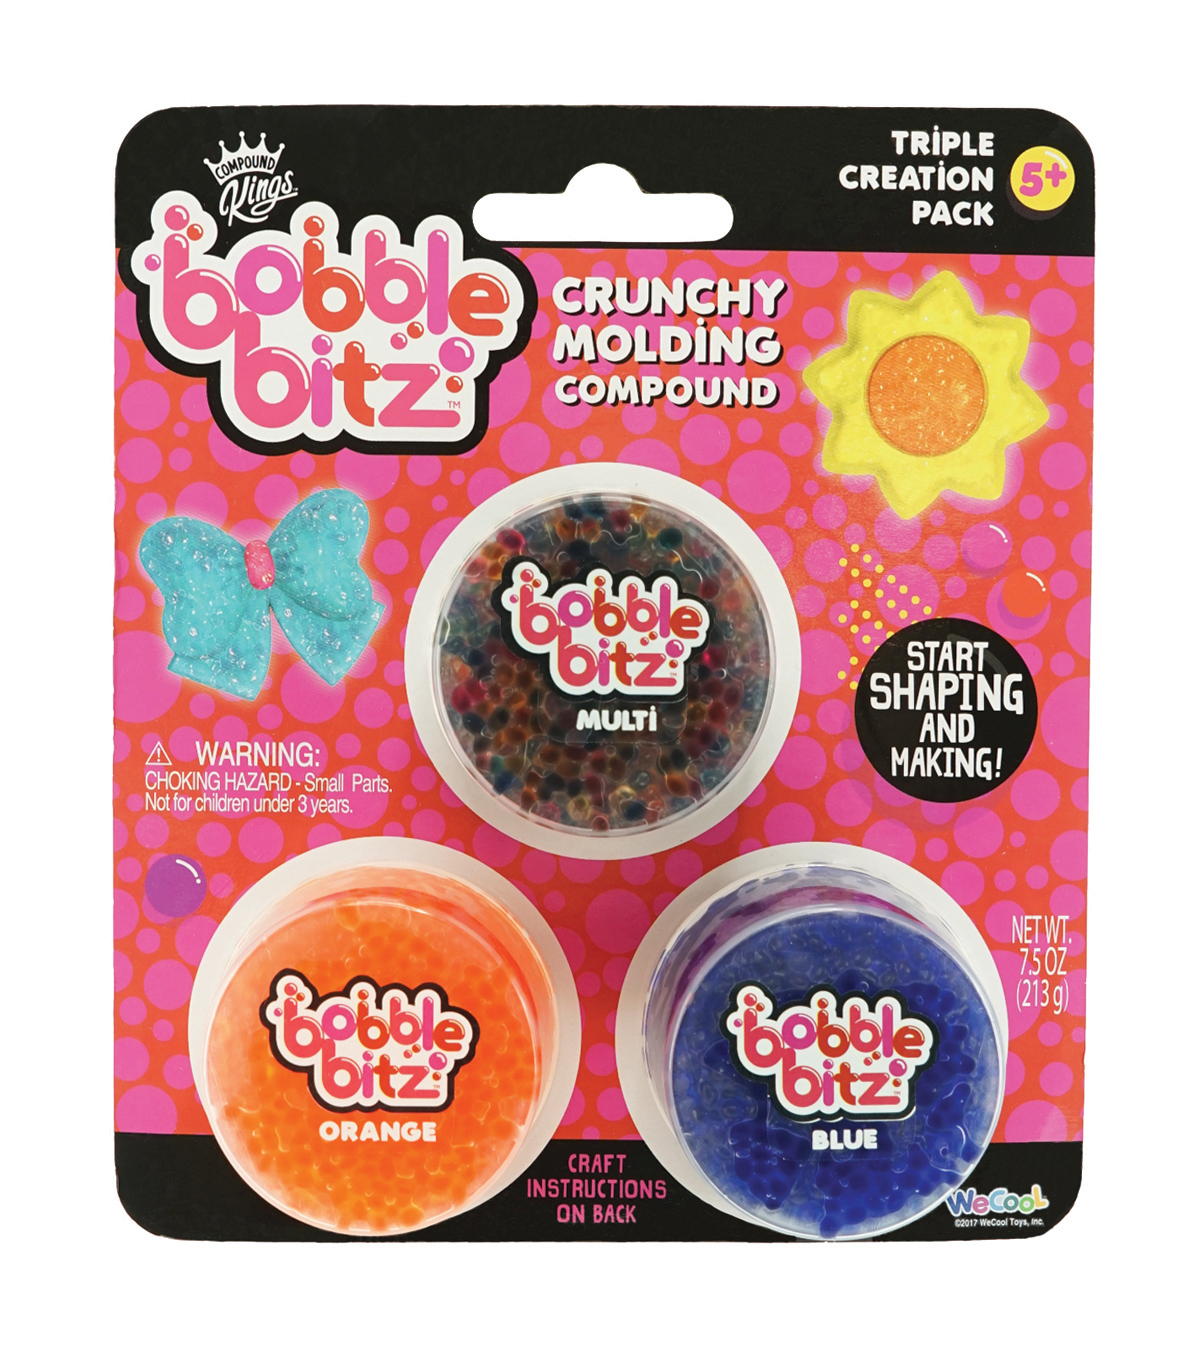 Bobble Bitz Crunchy Molding Compound Triple Pack-Multi, Orange & Blue